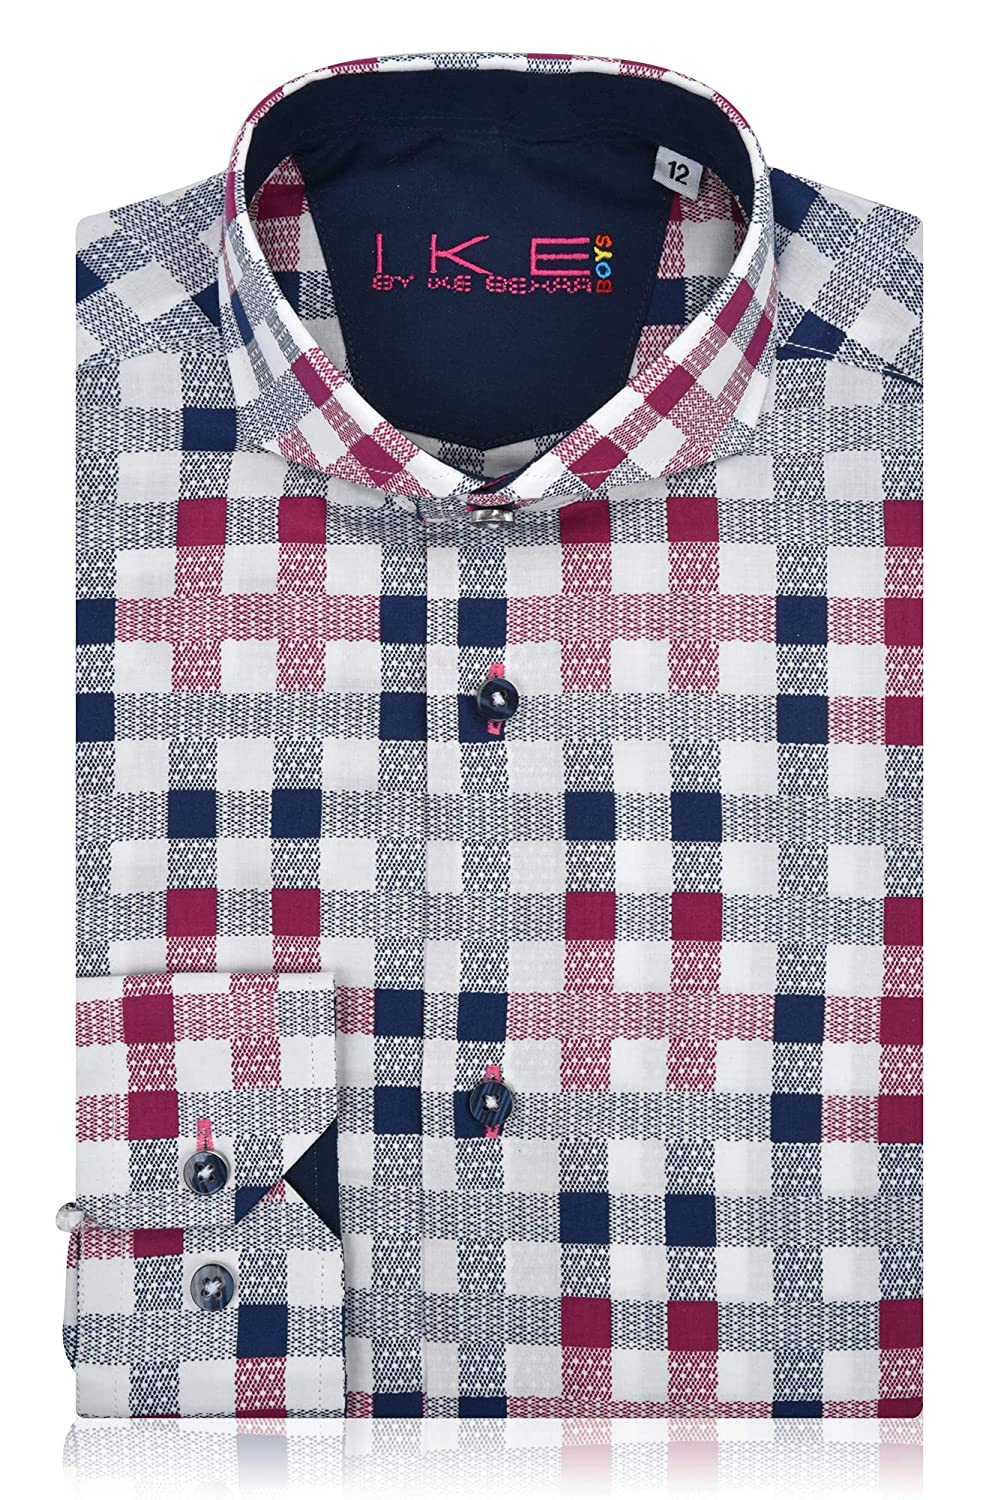 White Checker Box - Ike Behar Boys Dress Shirt Long Sleeve Button Down Navy Burgundy Sizes 4-20